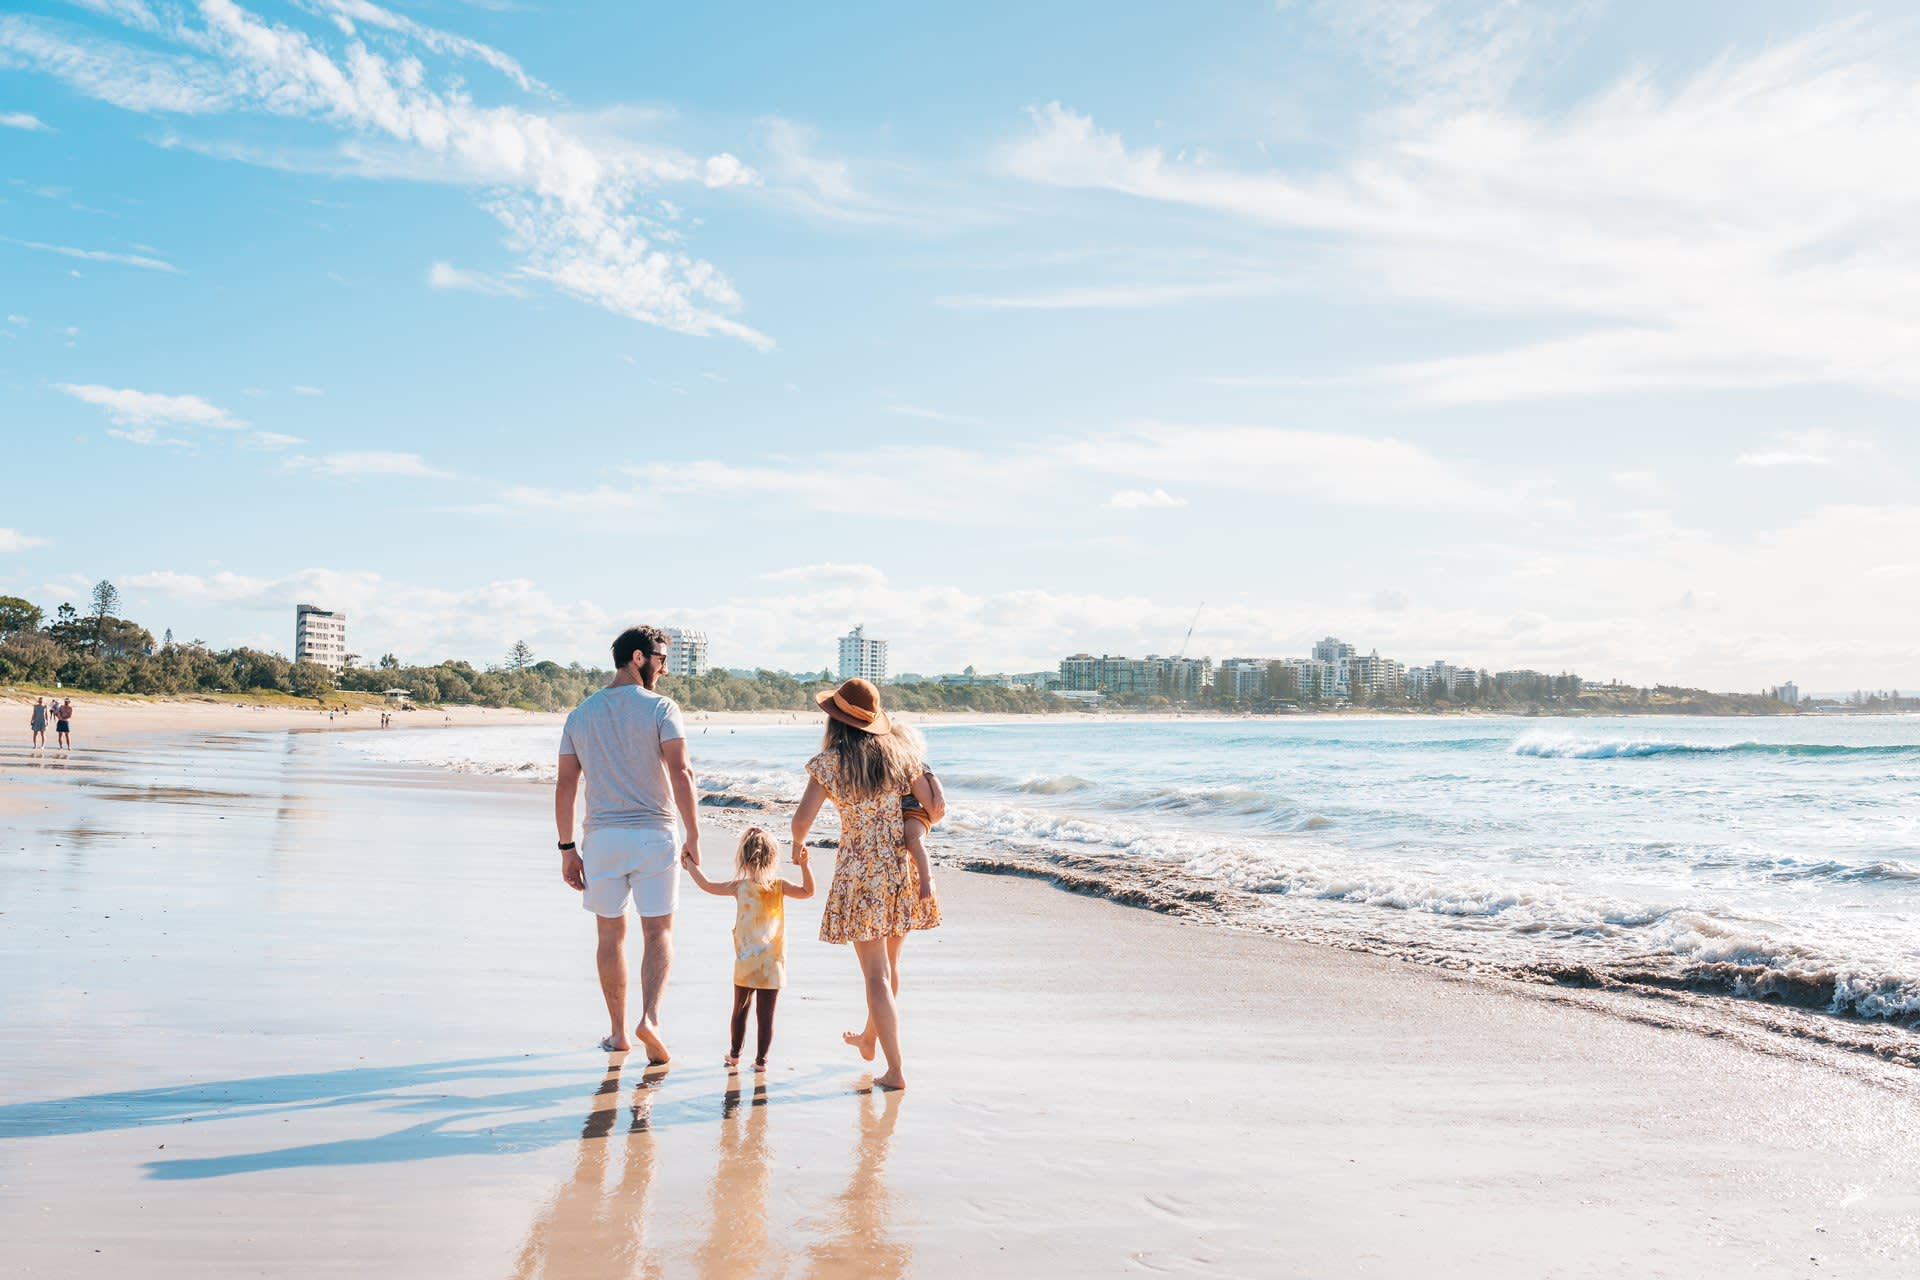 The perfect family day out in Mooloolaba